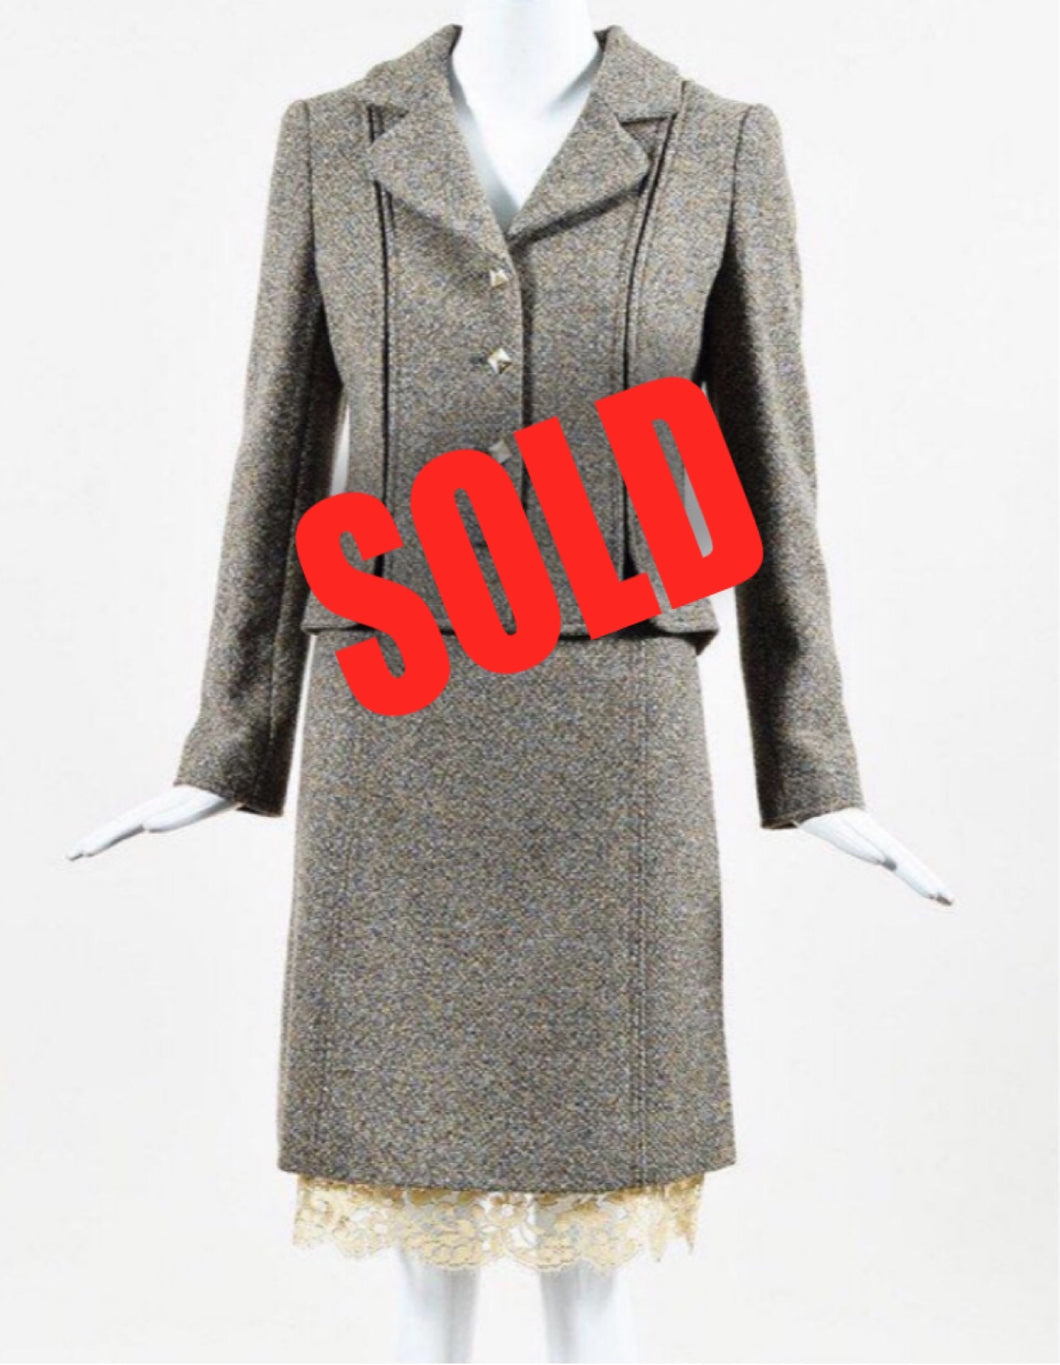 Chanel Vintage 03A, 2003 Fall Autumn Brown Tweed Lace Jacket Blazer Skirt Suit Set FR 48 US 14/16